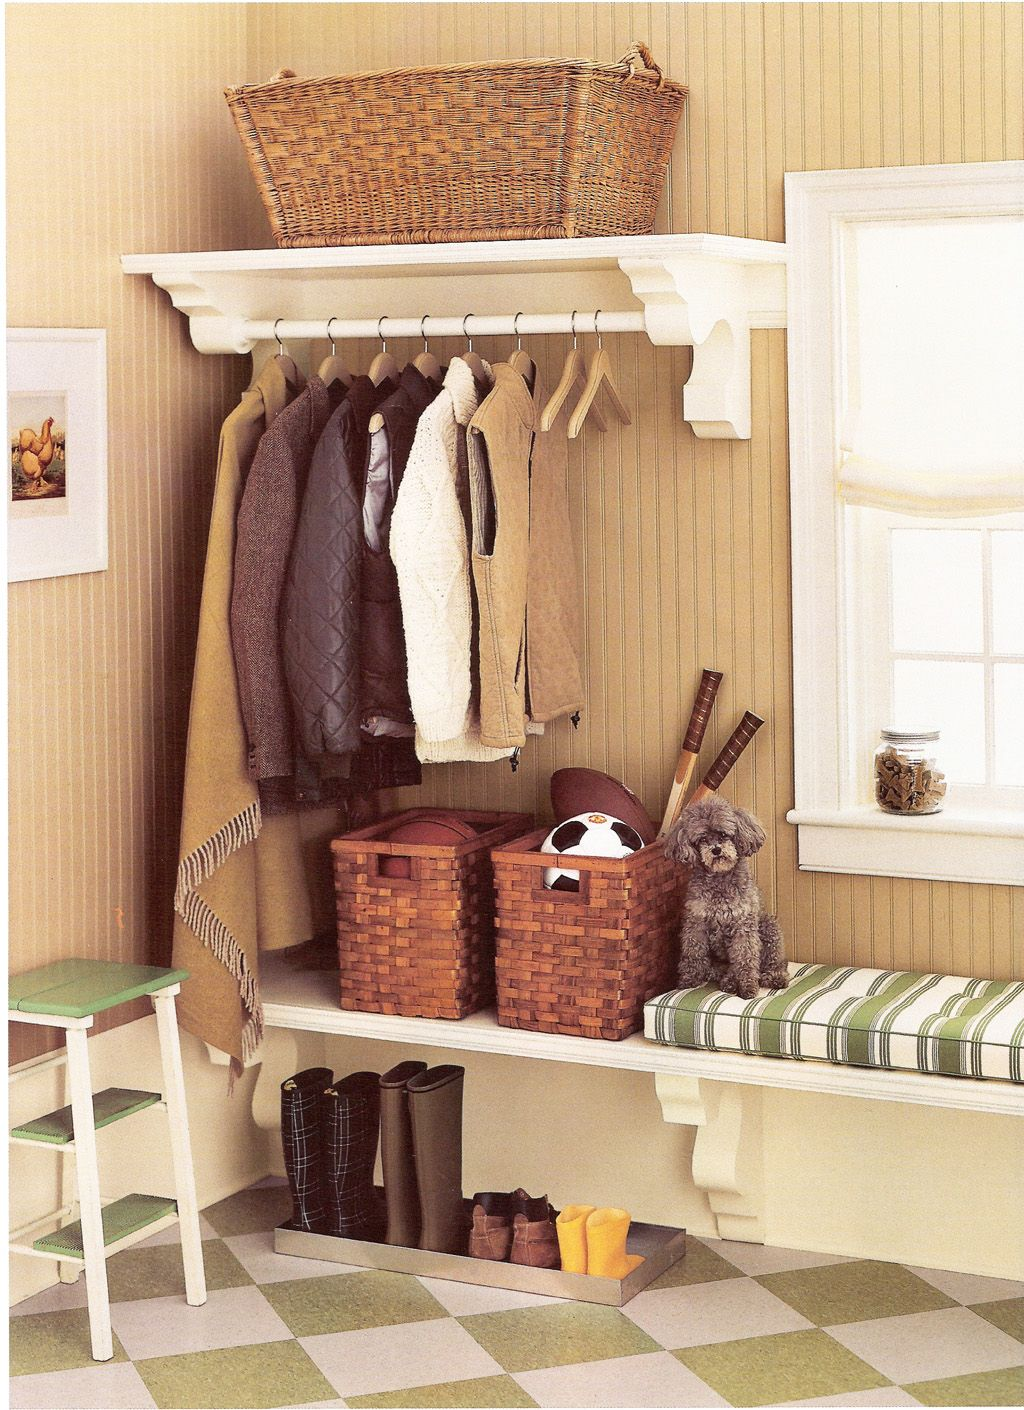 Excellent Entryways Home Decor Home Organization Small Space